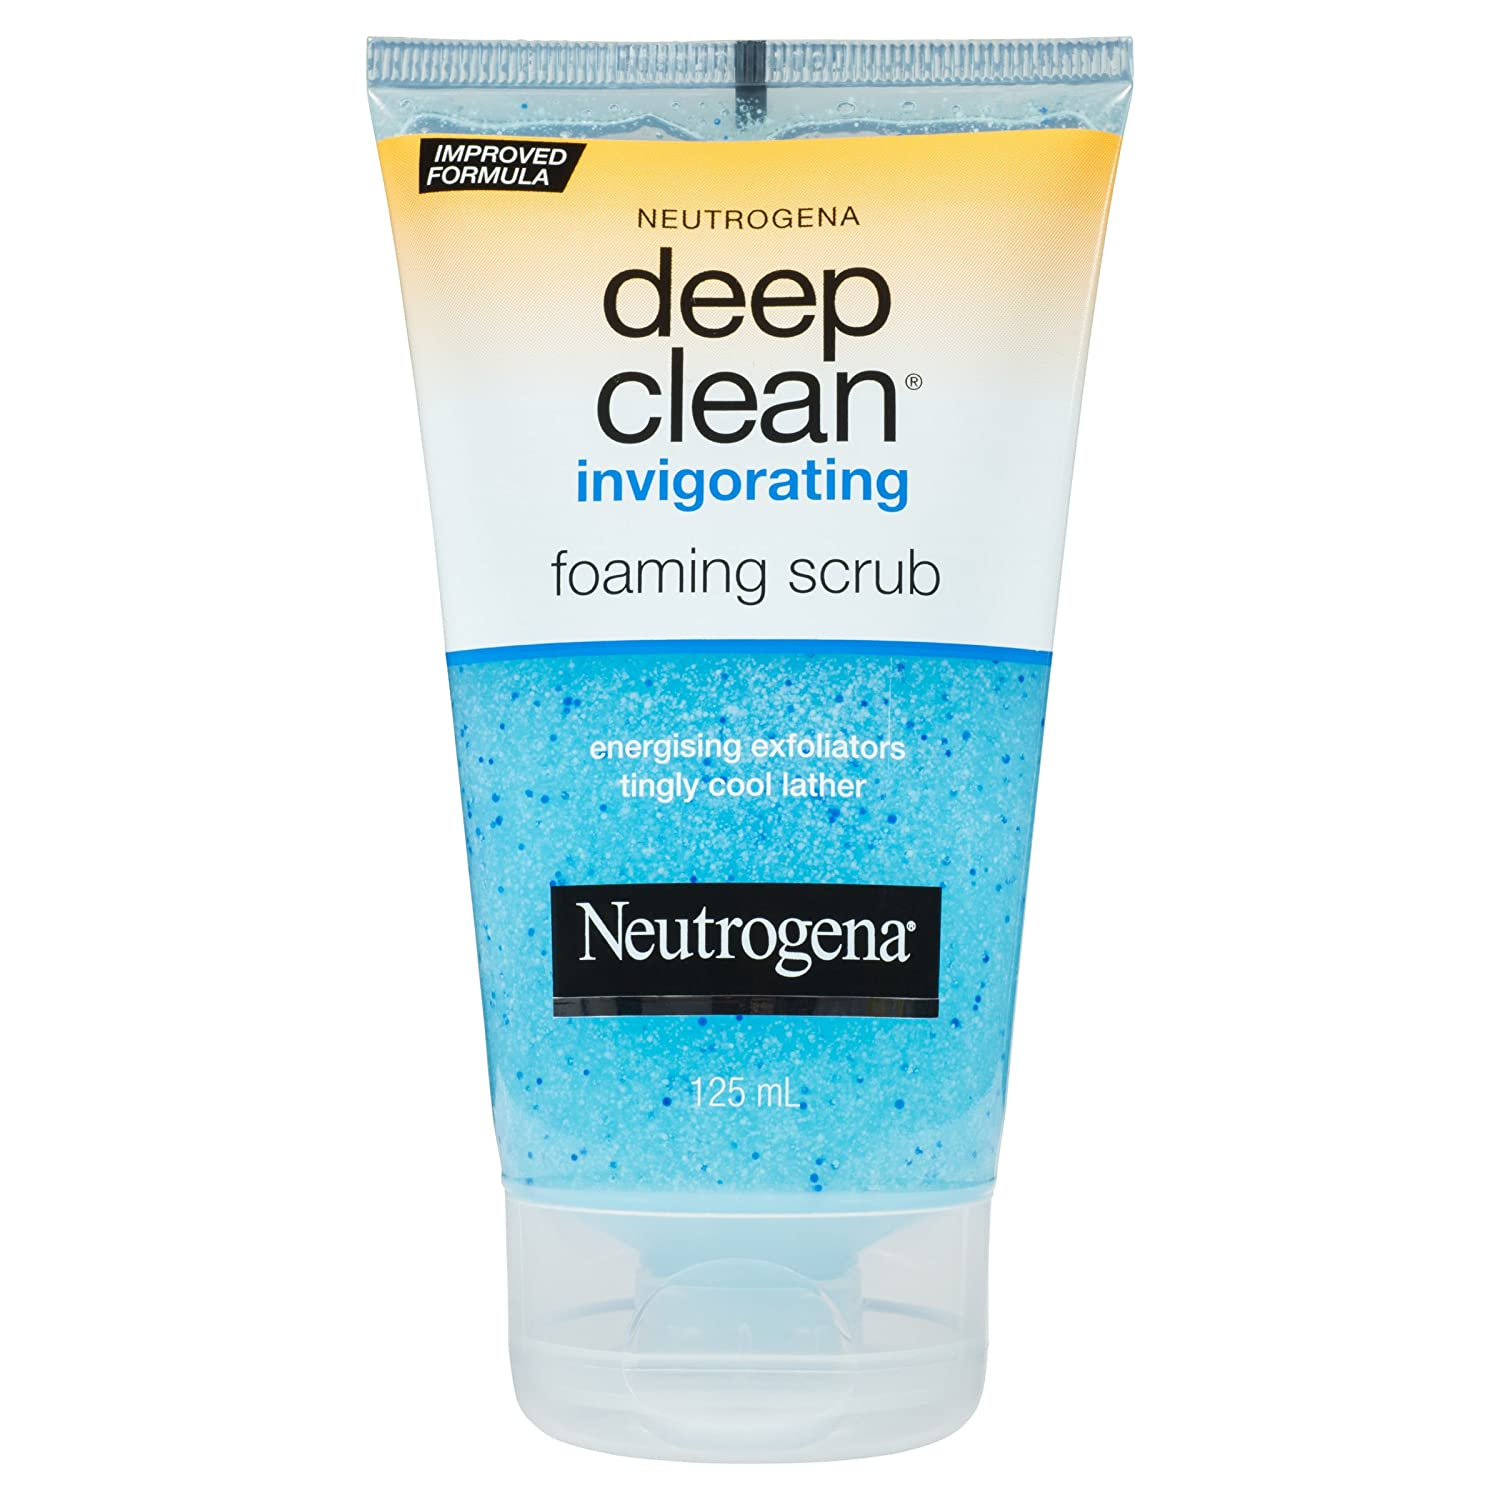 Neutrogena Deep Clean Invigorating Foaming Face Scrub with Glycerin, Cooling & Exfoliating Face Wash to Remove Dirt, Oil & Makeup, 4.2 fl. oz Neutrogena Corporation 26805086